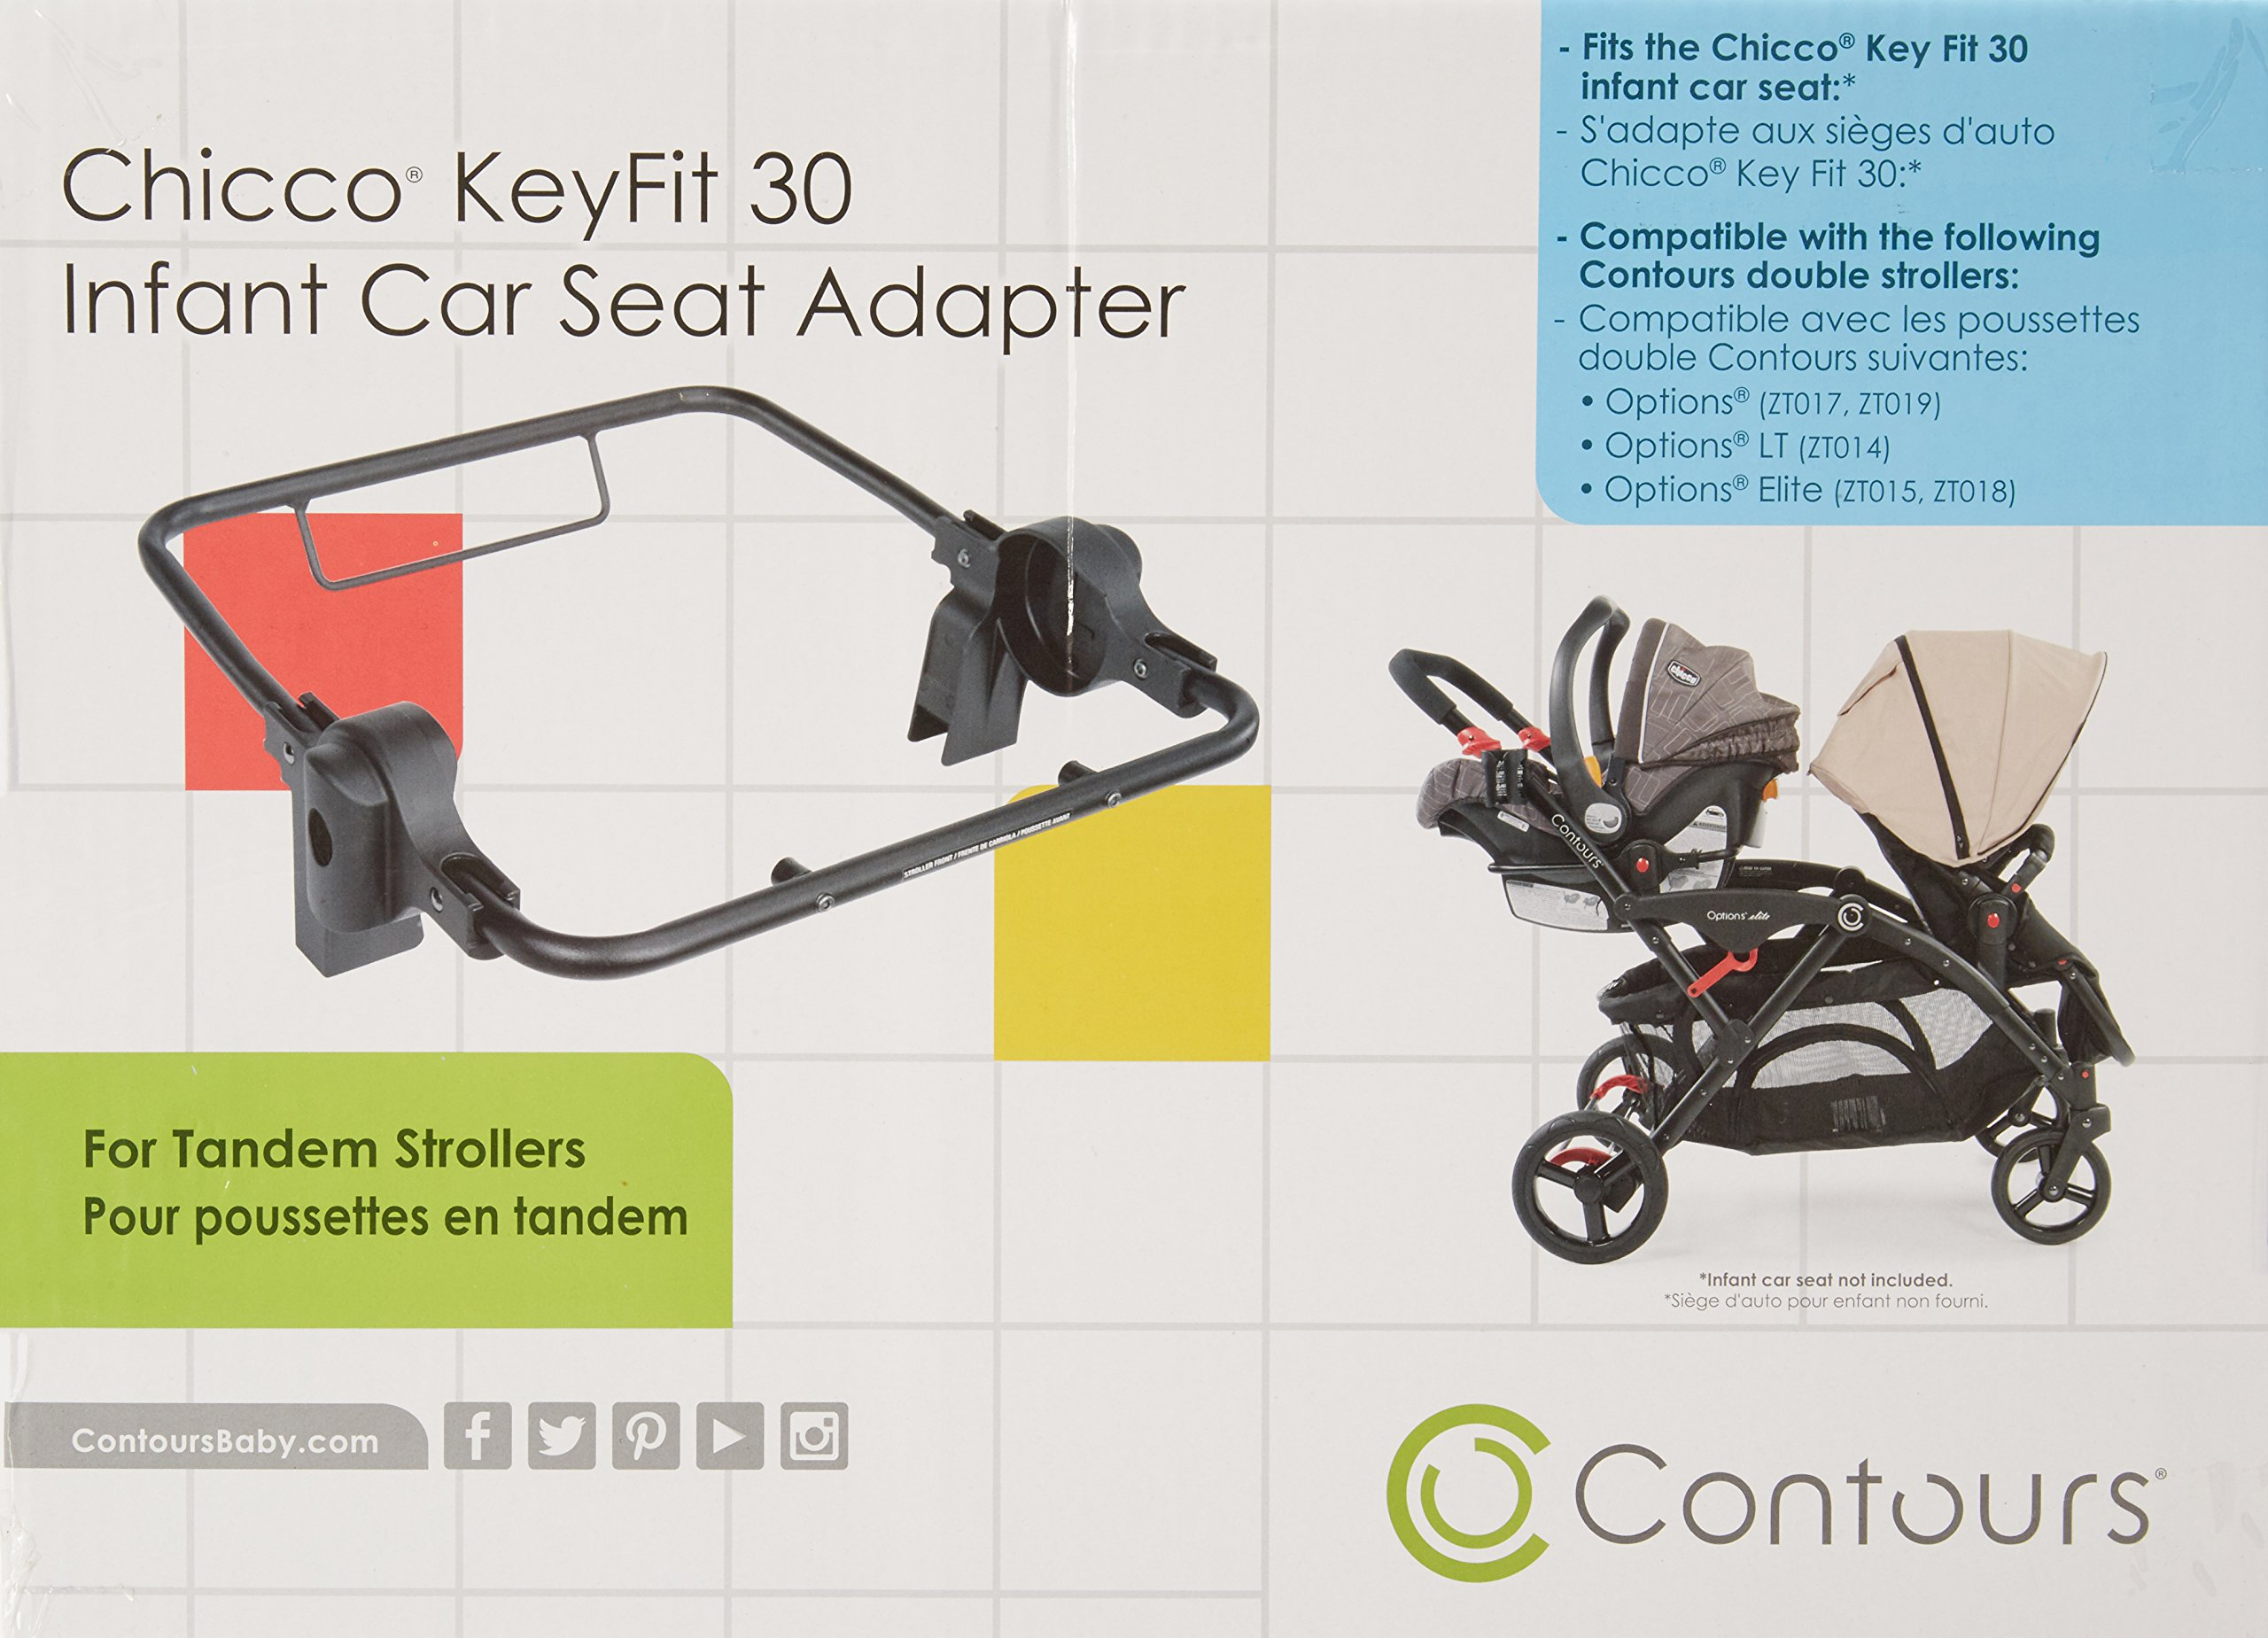 Contours Infant Car Seat Adapter -Compatible with Chicco KeyFit 30 for Contours Options, Options Elite, Contours LT Tandem Strollers by Contours (Image #2)